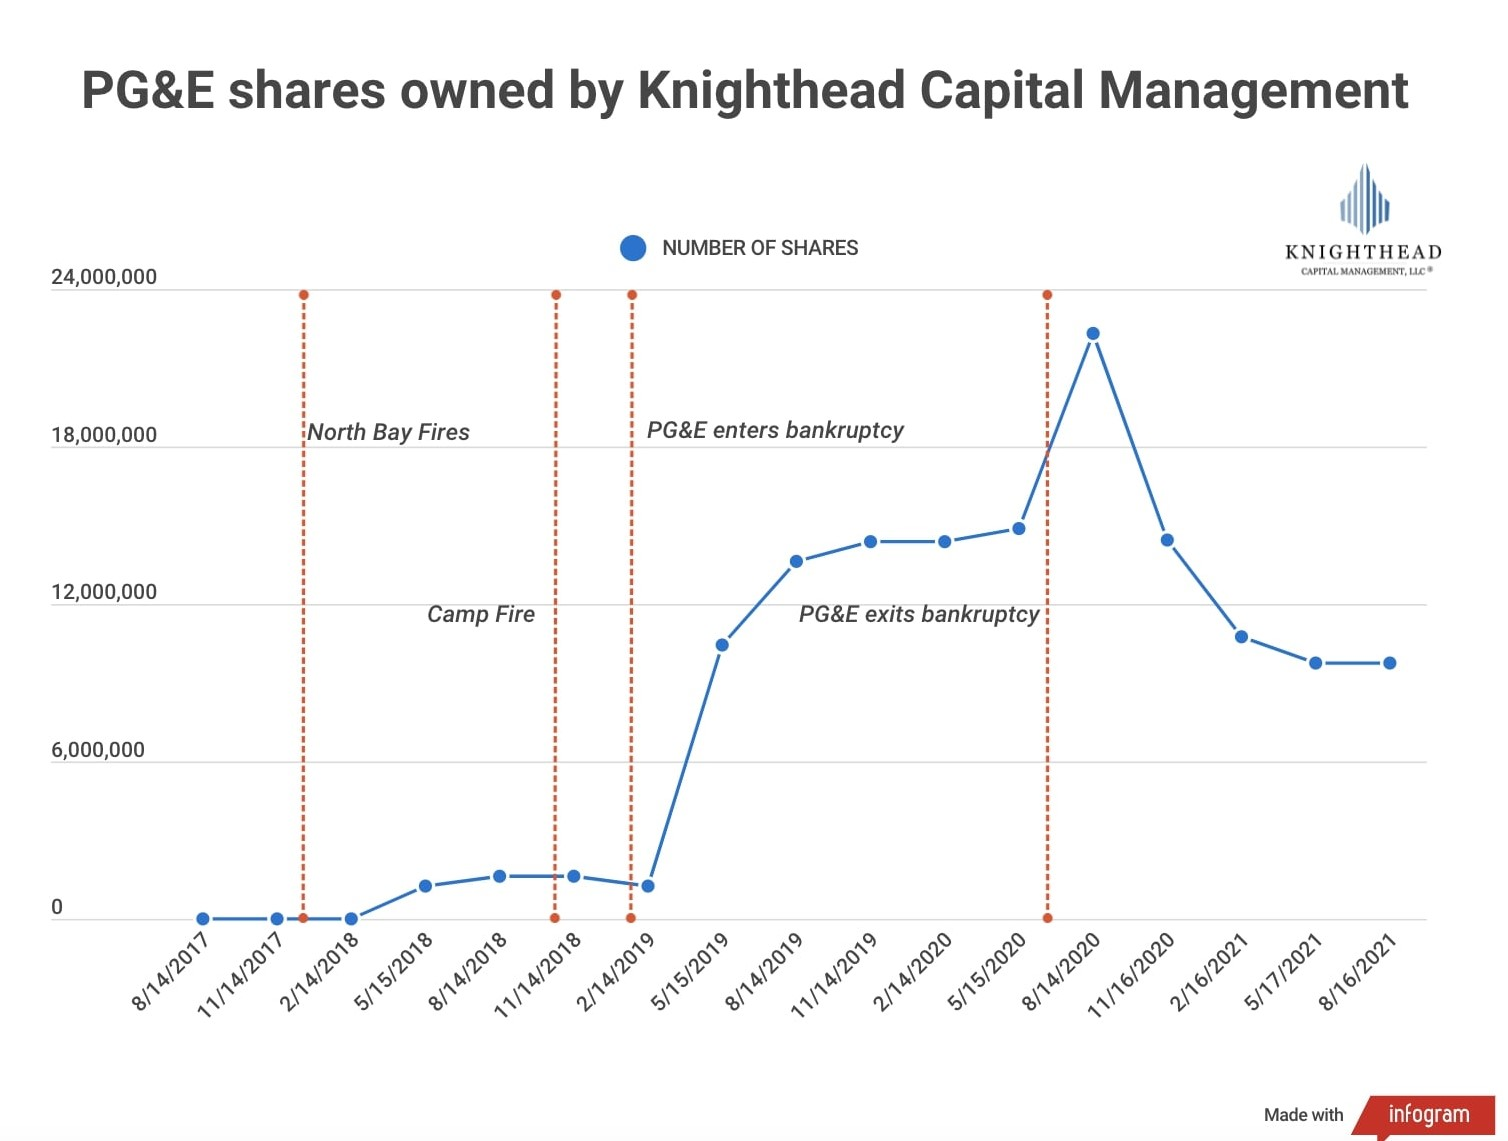 A graphic shows PG&E shares owned by Knighthead Capital Management from 2017 to 2021, with shares peaking after PG&E exits bankruptcy, particularly in August 2020.